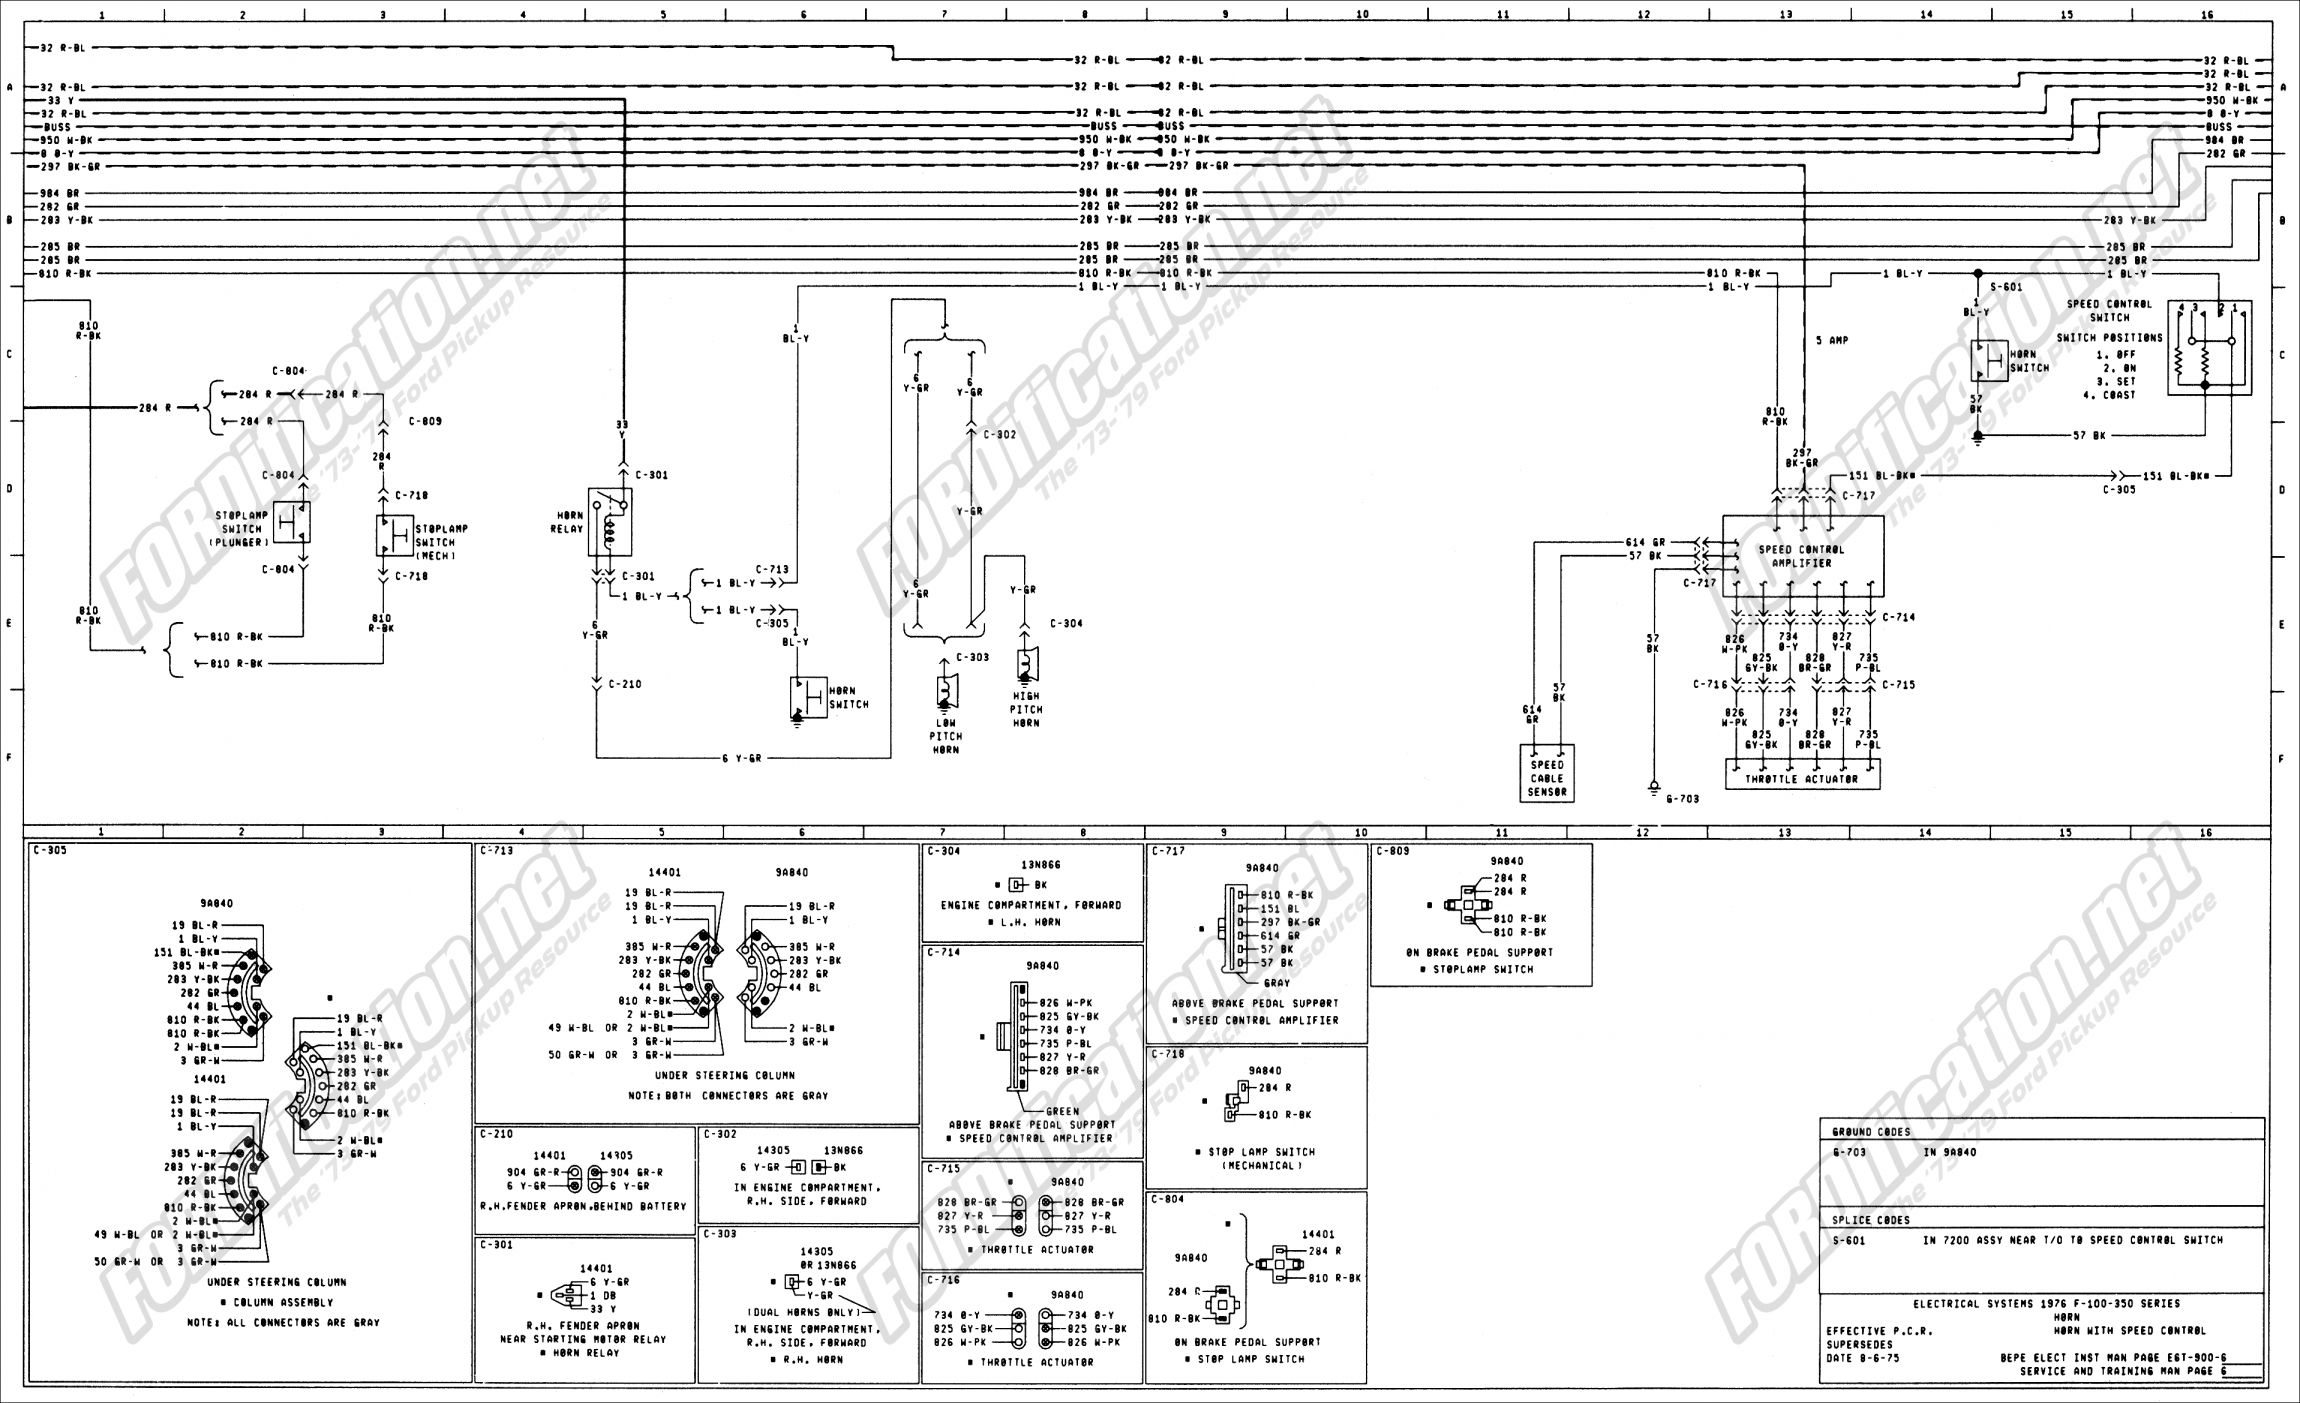 Pin on Truck Diagram | 2015 Ford F650 Wiring Diagram |  | Pinterest